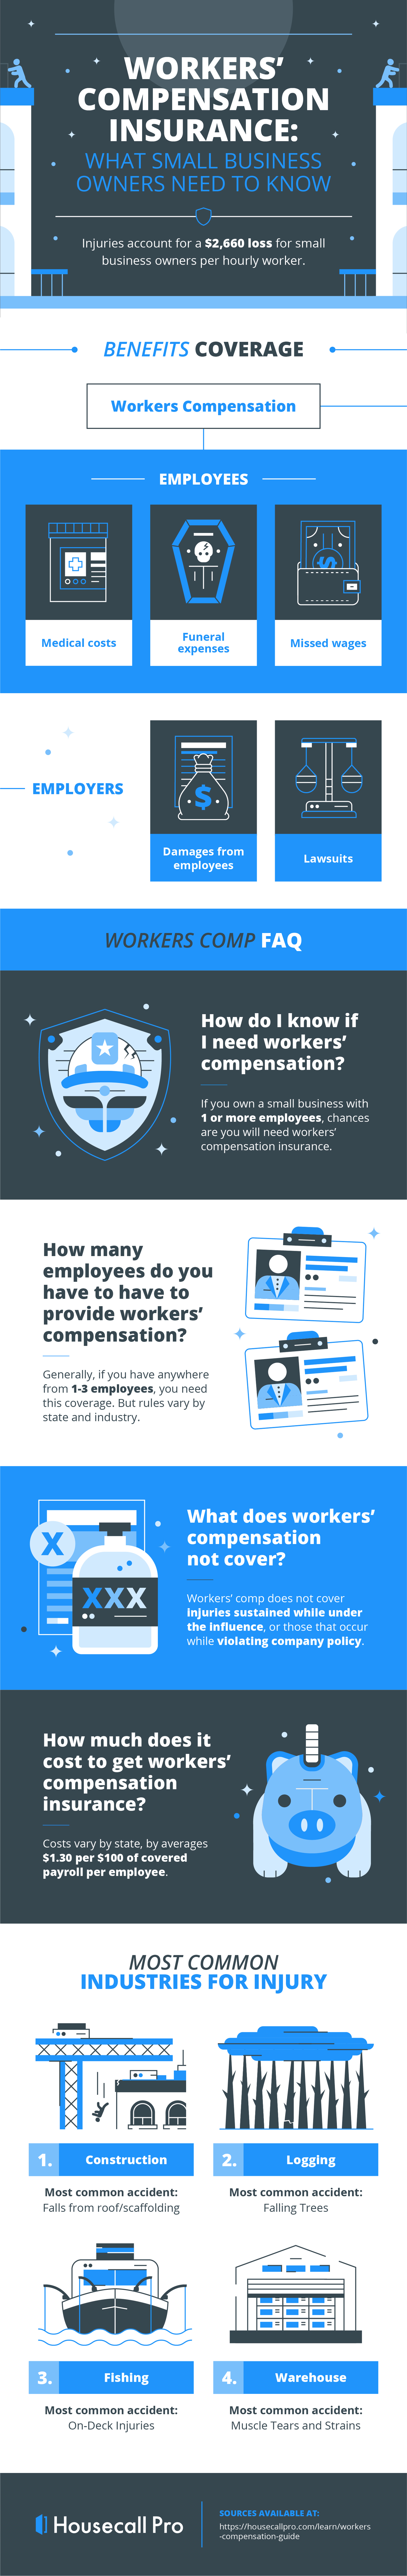 guide to workers compensation insurance